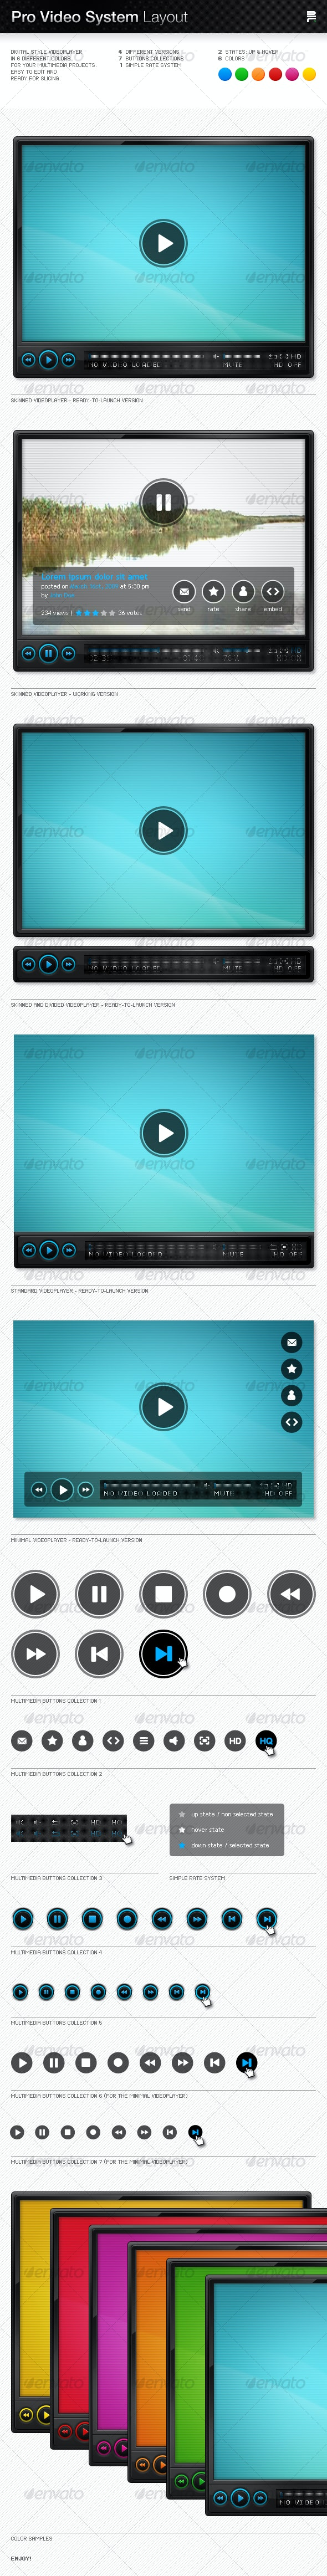 Pro Video System Layout - Miscellaneous Web Elements